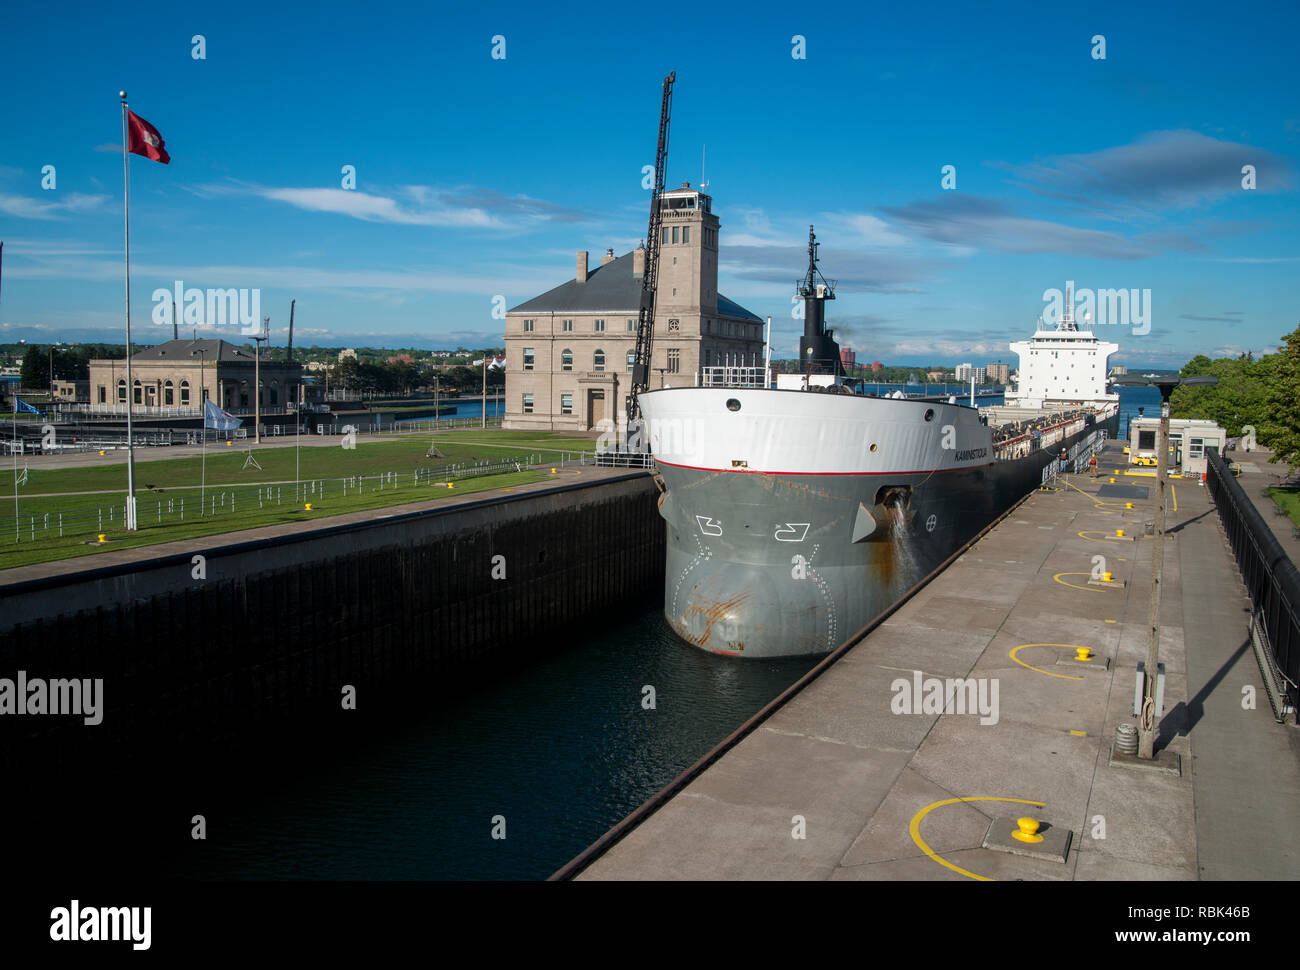 Sault Ste Marie, Michigan. The bulk carrier Kaministiqua going through the Soo Locks on the St. Mary's river heading out to Lake Superior to pickup a  - Stock Image